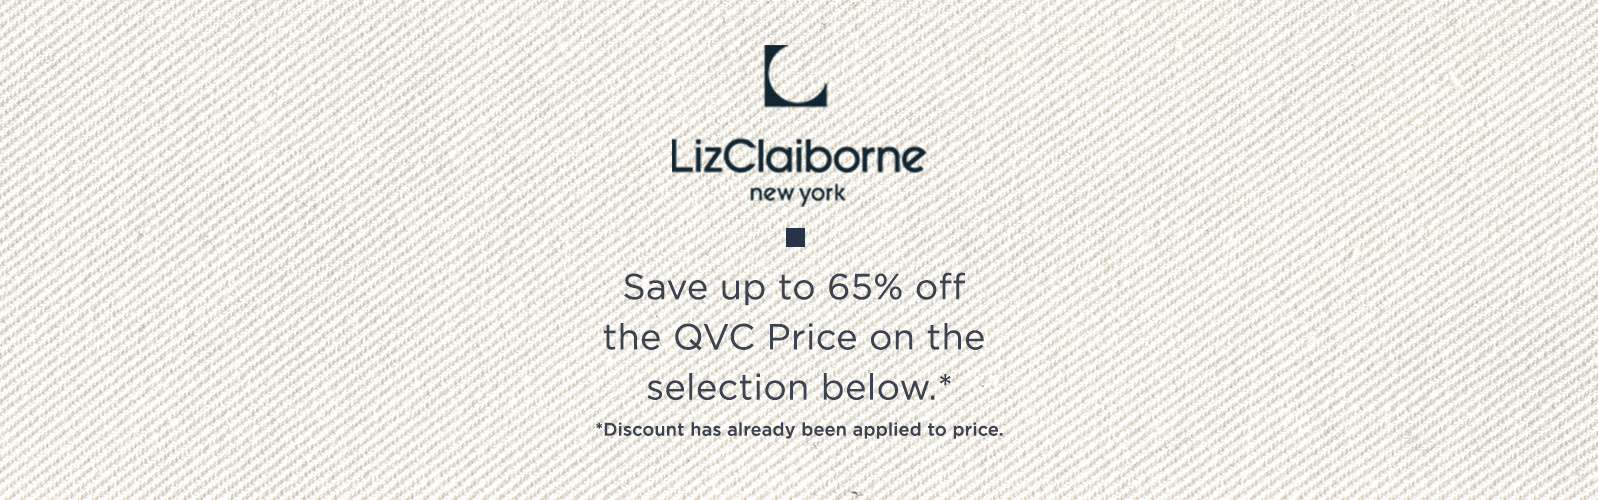 Liz Claiborne New York. Save up to 65% off the QVC Price on the selection below.*  *Discount has already been applied to price.